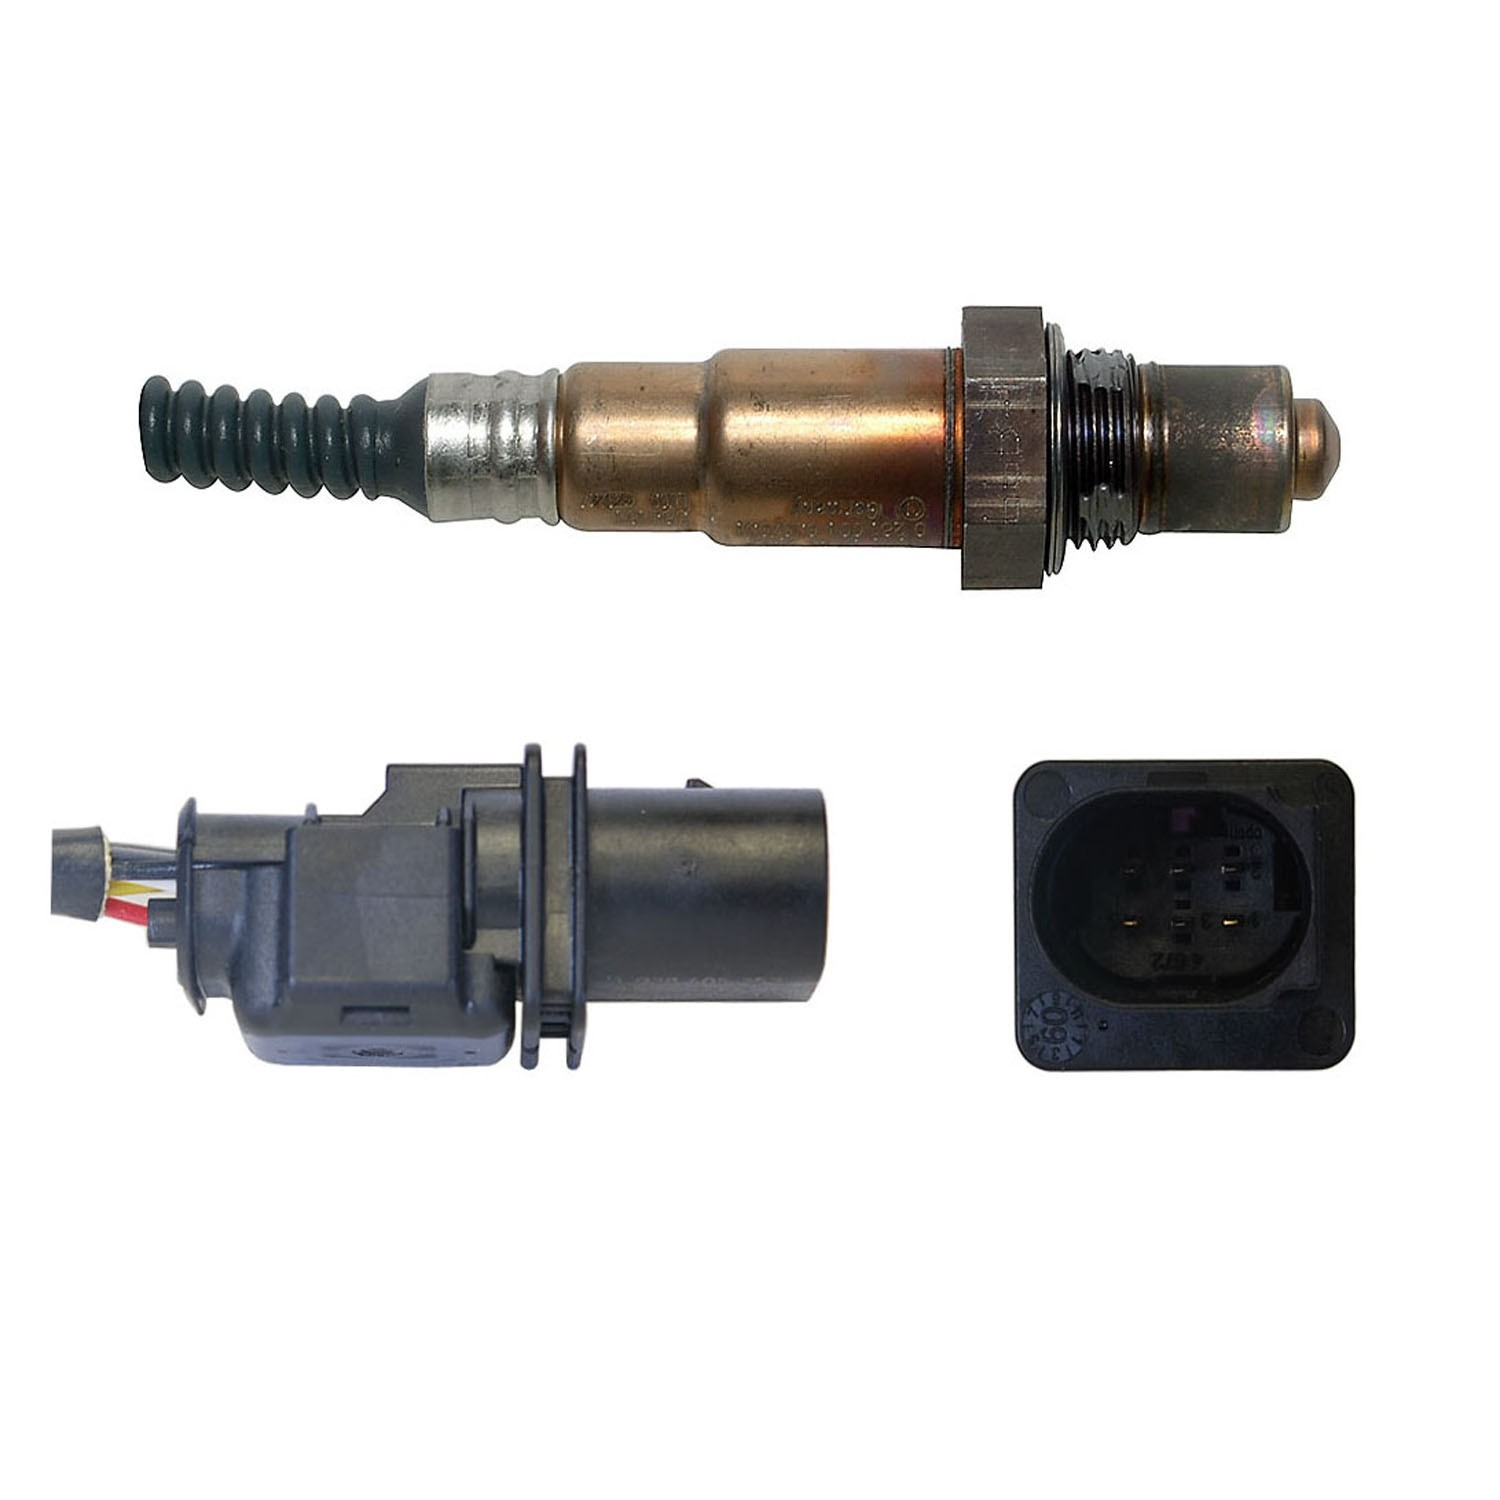 Denso 2345116 Air / Fuel Ratio Sensor Fits 2004-2005 Volkswagen Passat